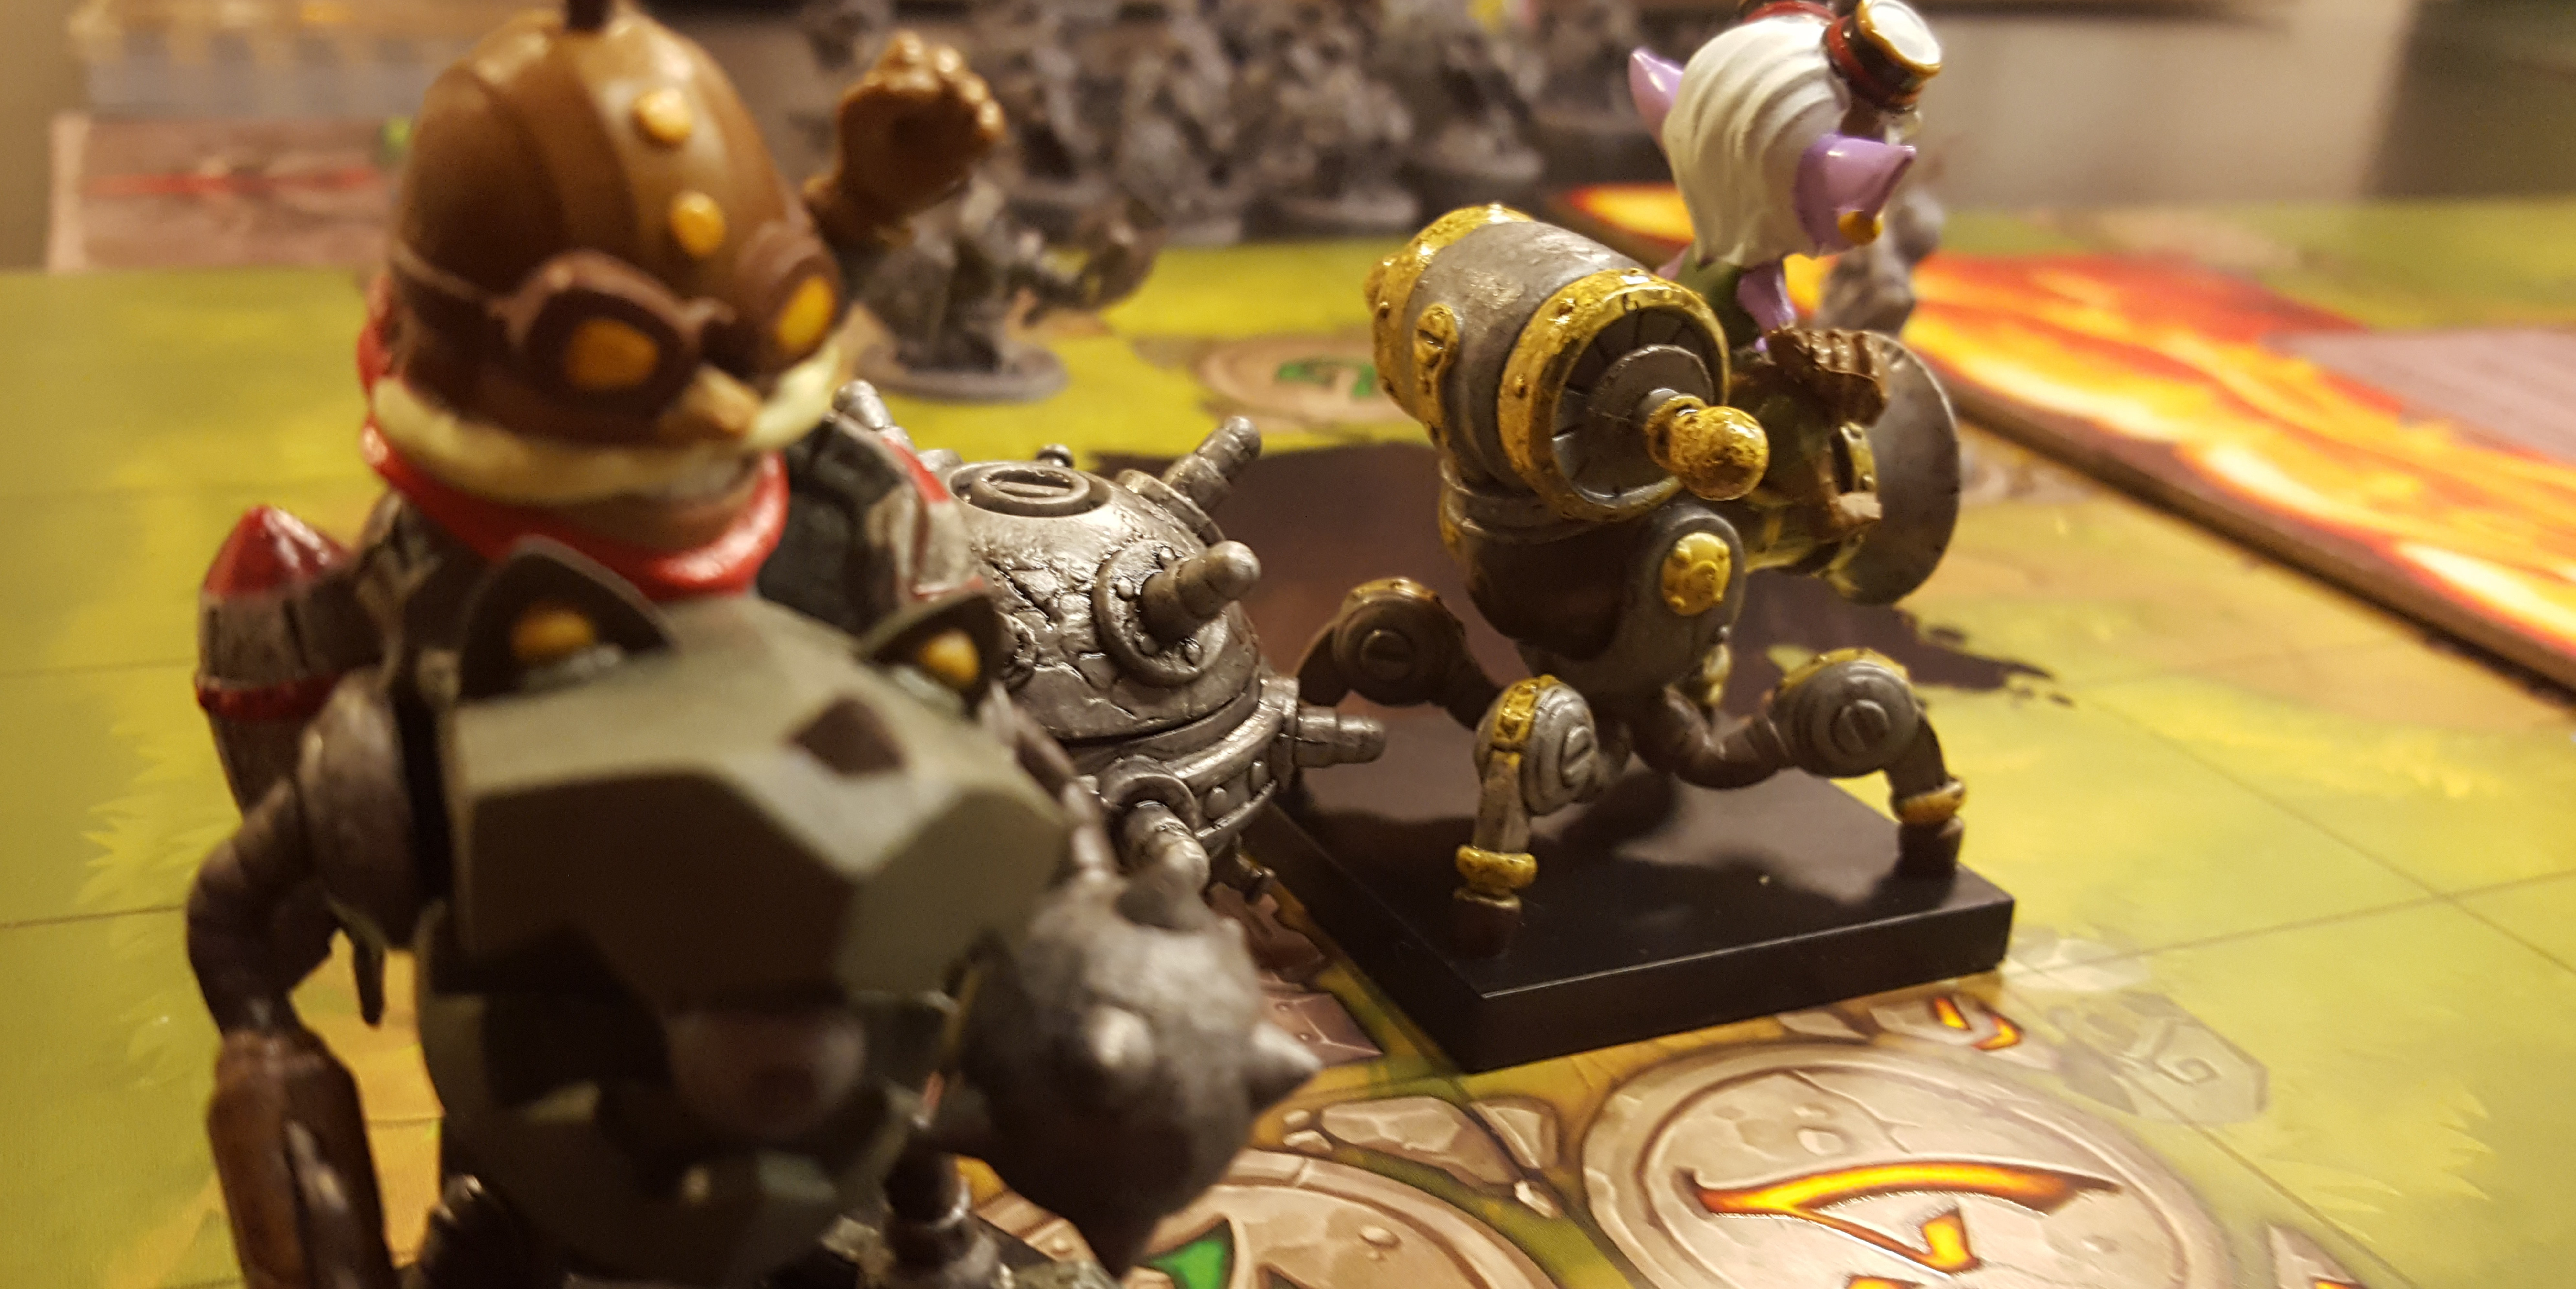 'Mechs vs. Minions' Marries High Explosives and Hijinks